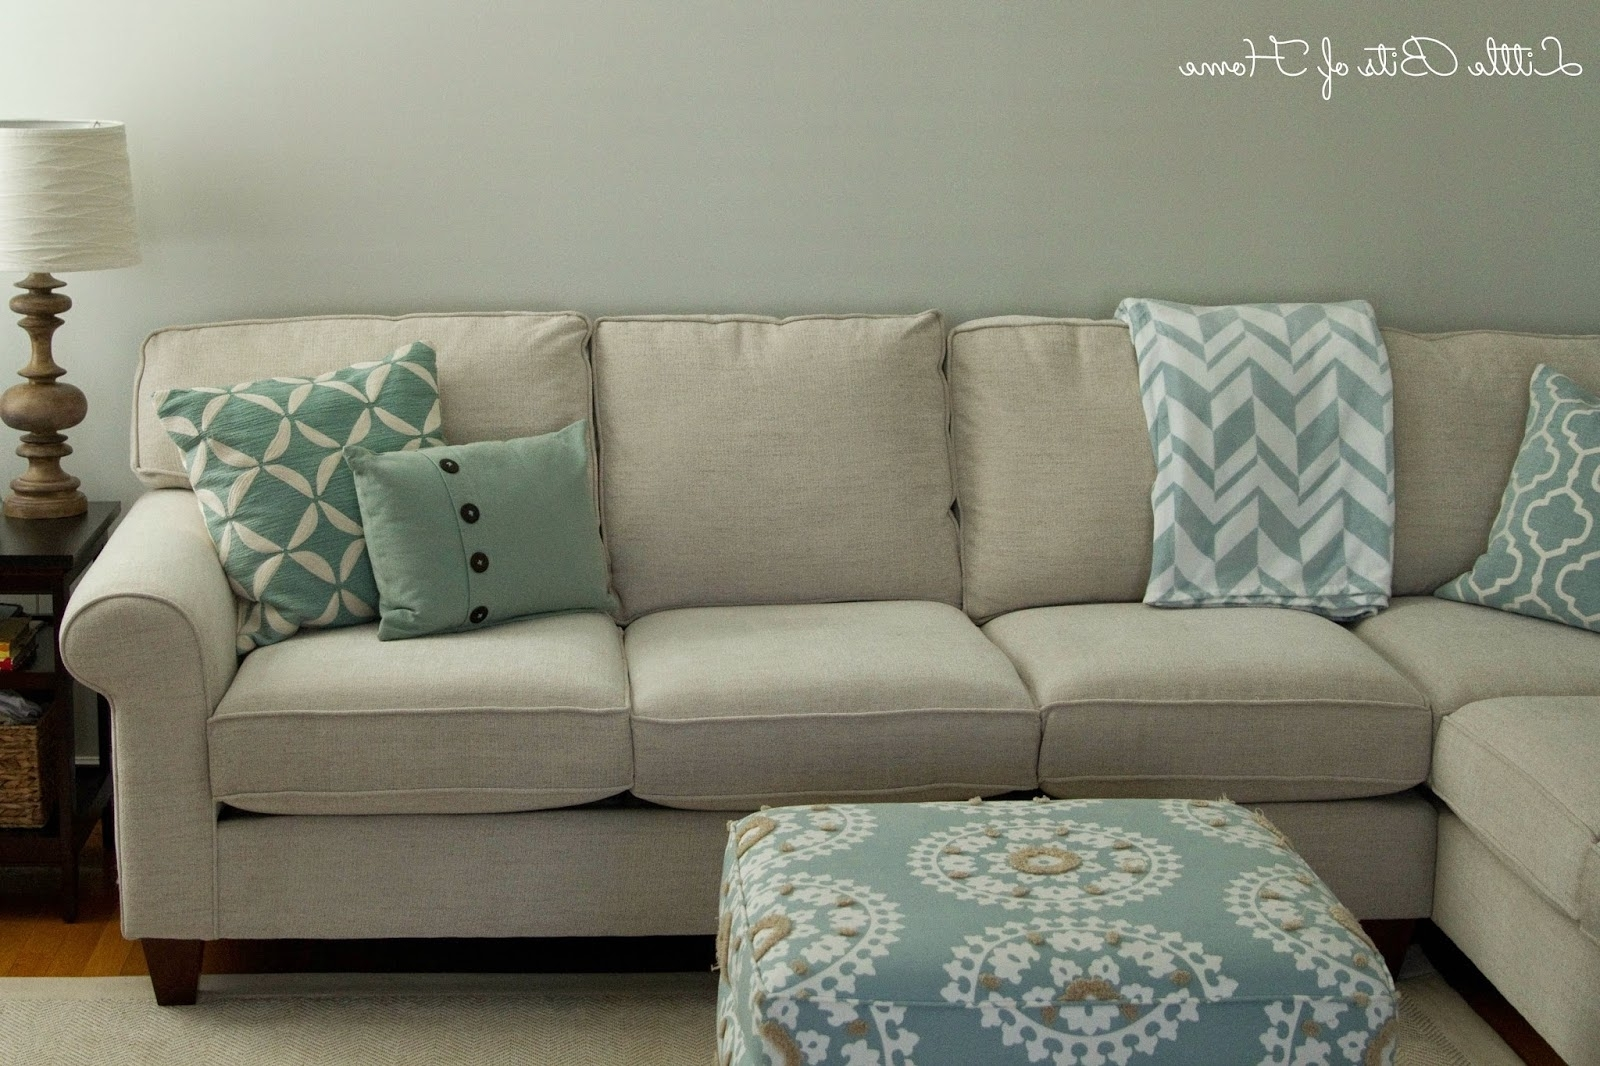 Living Room Makeover: Couch Redo Within Most Recent Havertys Sectional Sofas (View 4 of 15)